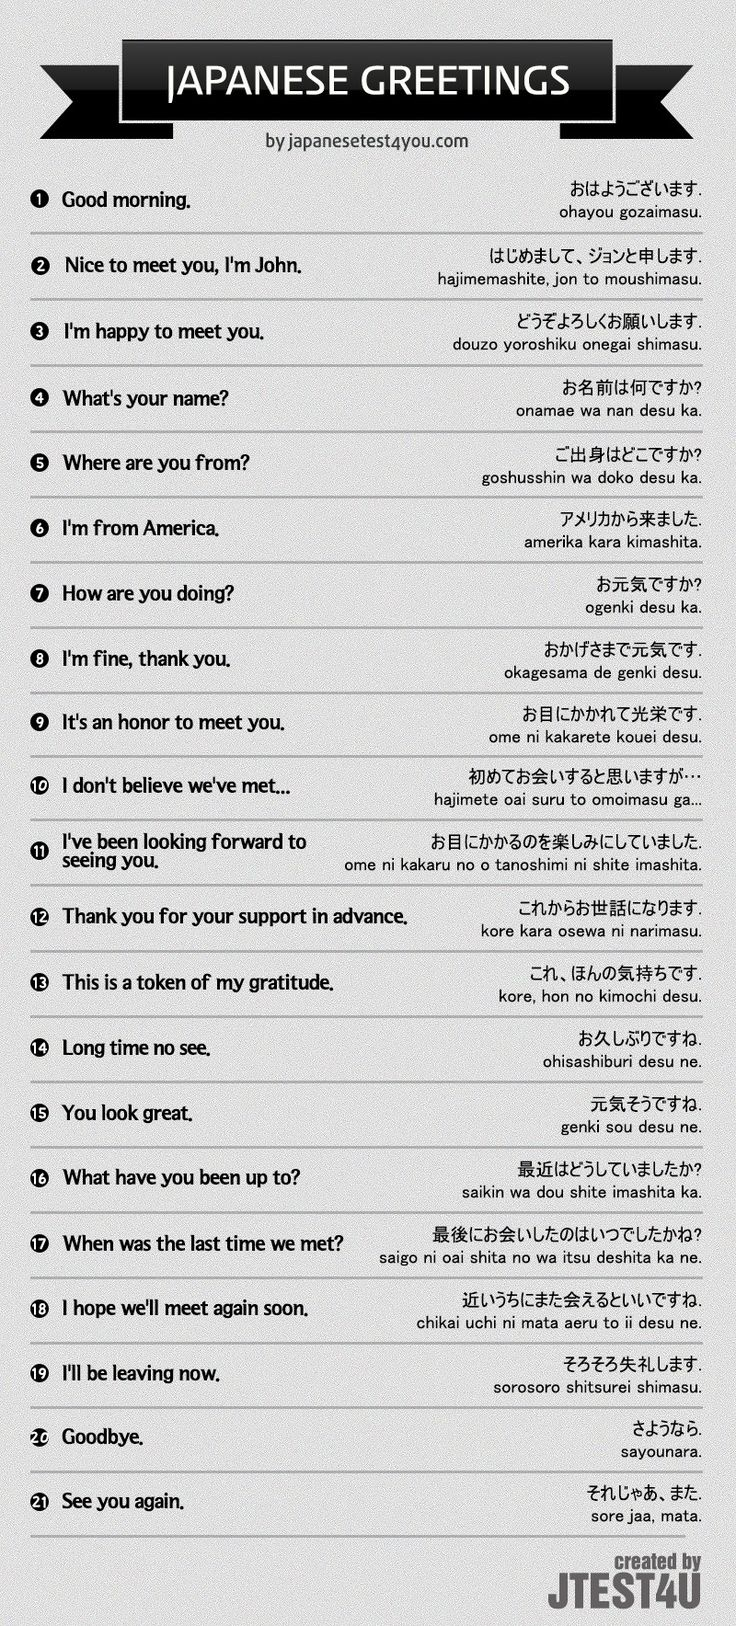 educational infographic   infographic  how to greet people in japanese  japanesetest4you